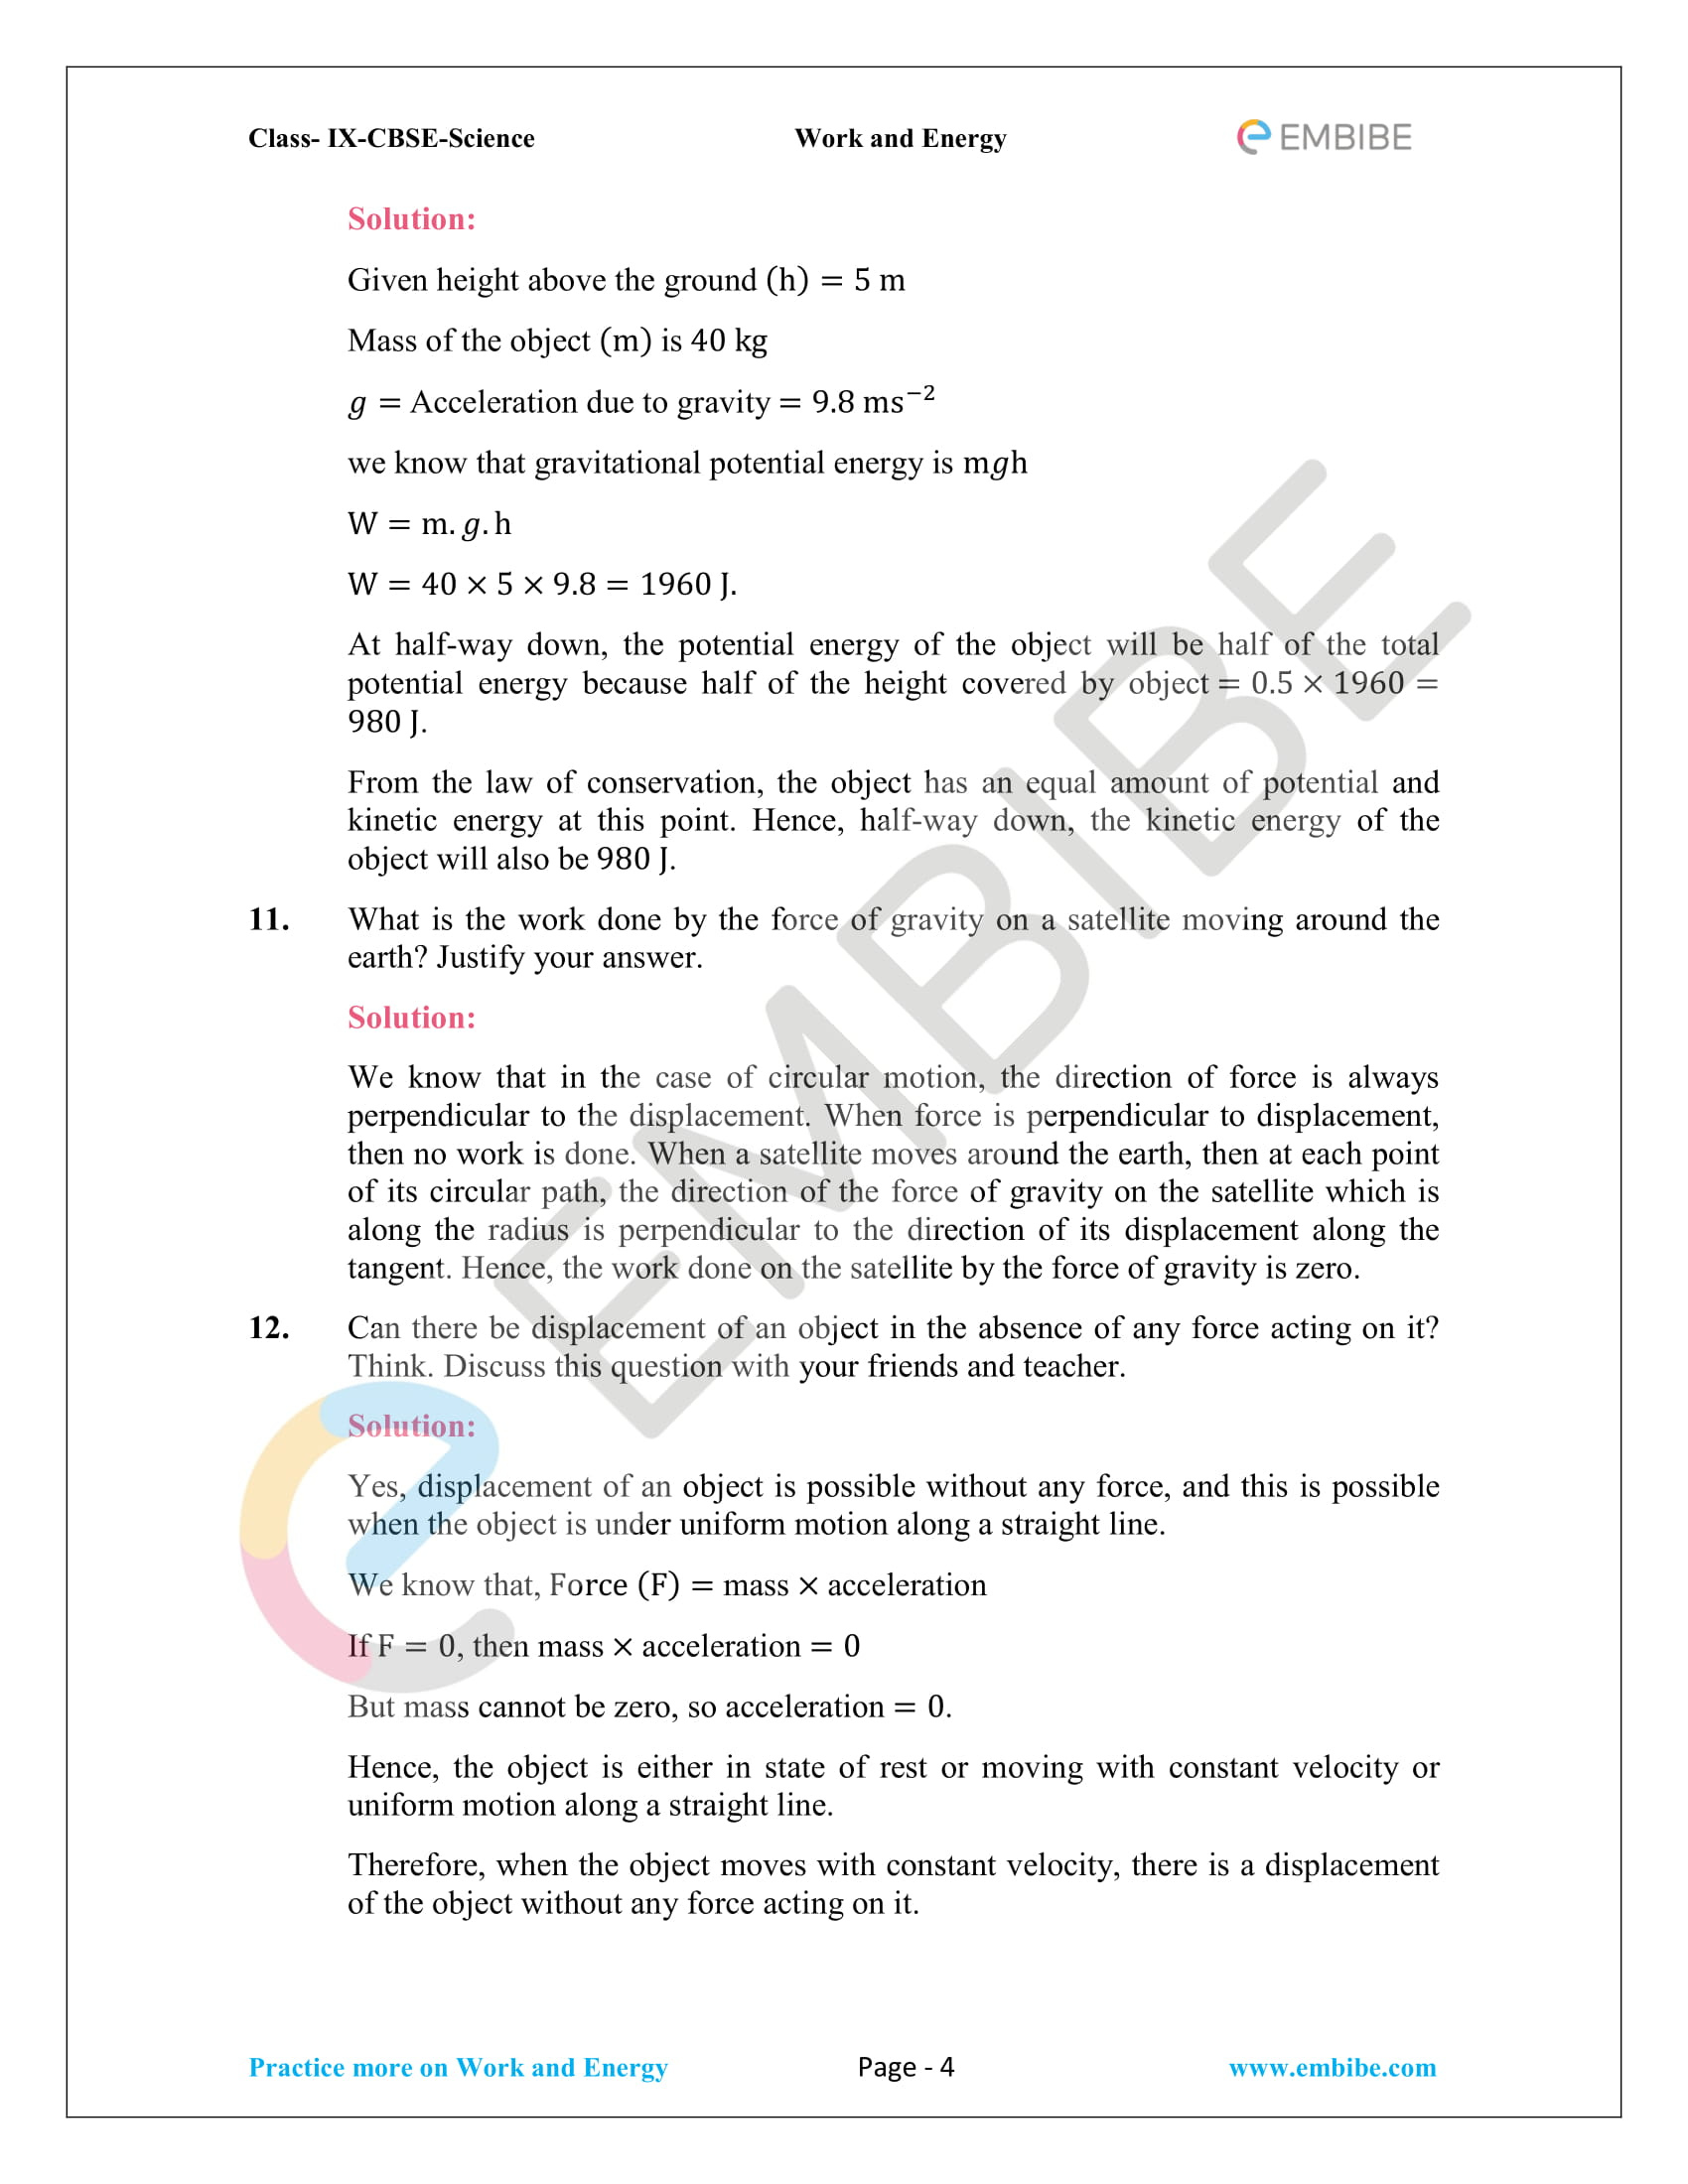 CBSE NCERT Solutions For Class 9 Science Chapter 11 – Work And Energy - 4